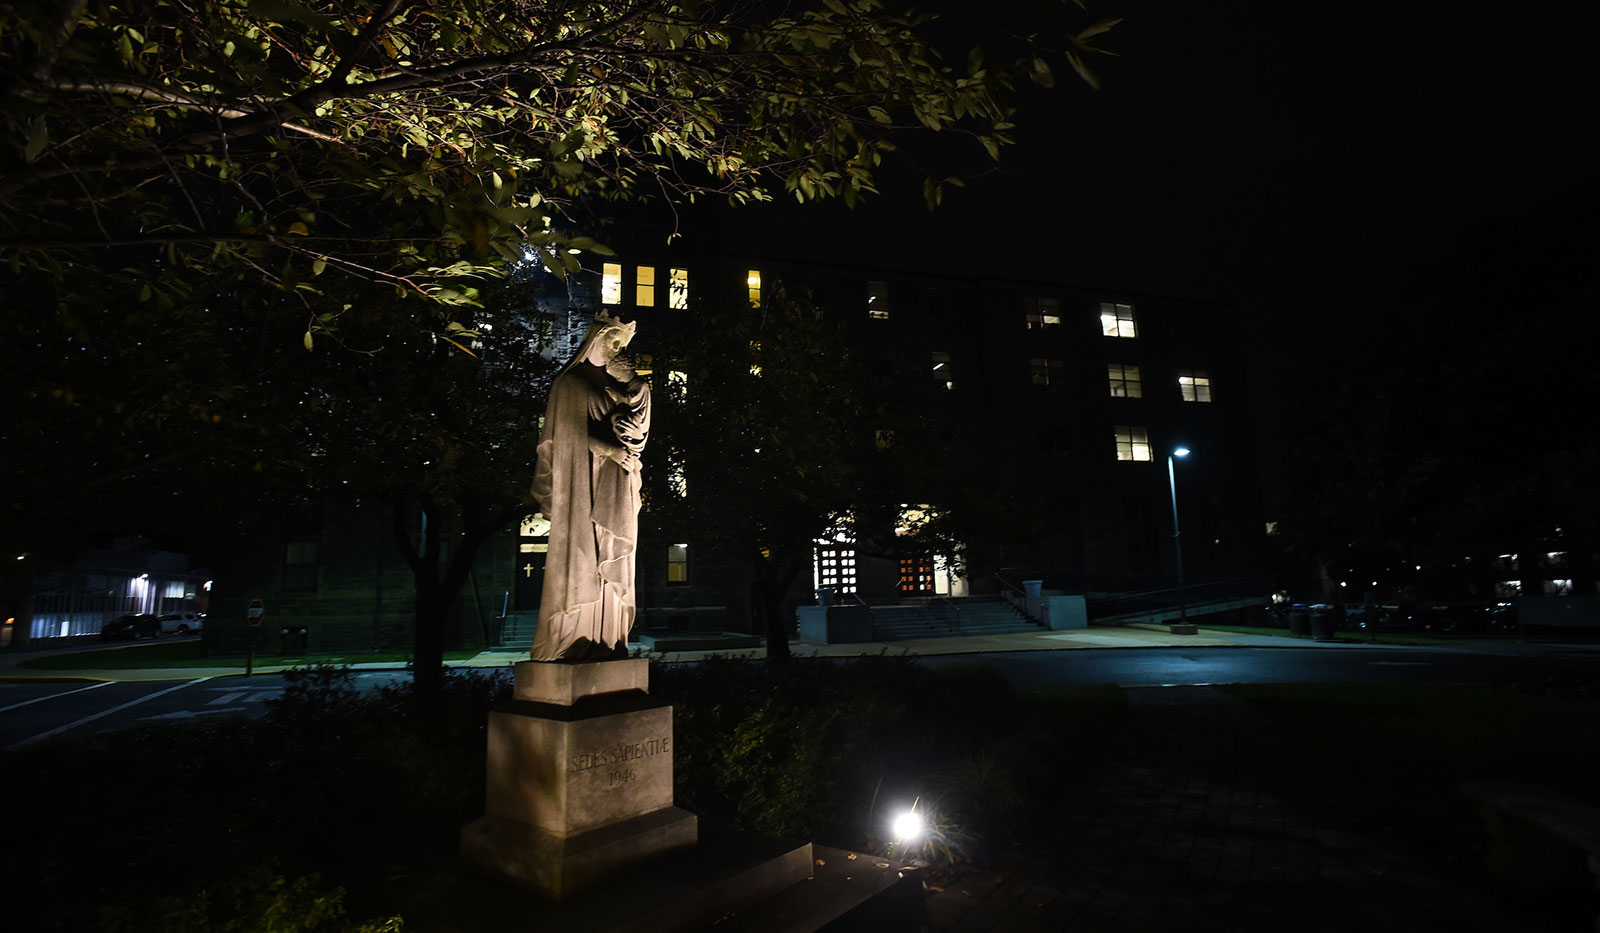 A night scene of the Mary, Seat of Wisdom statue